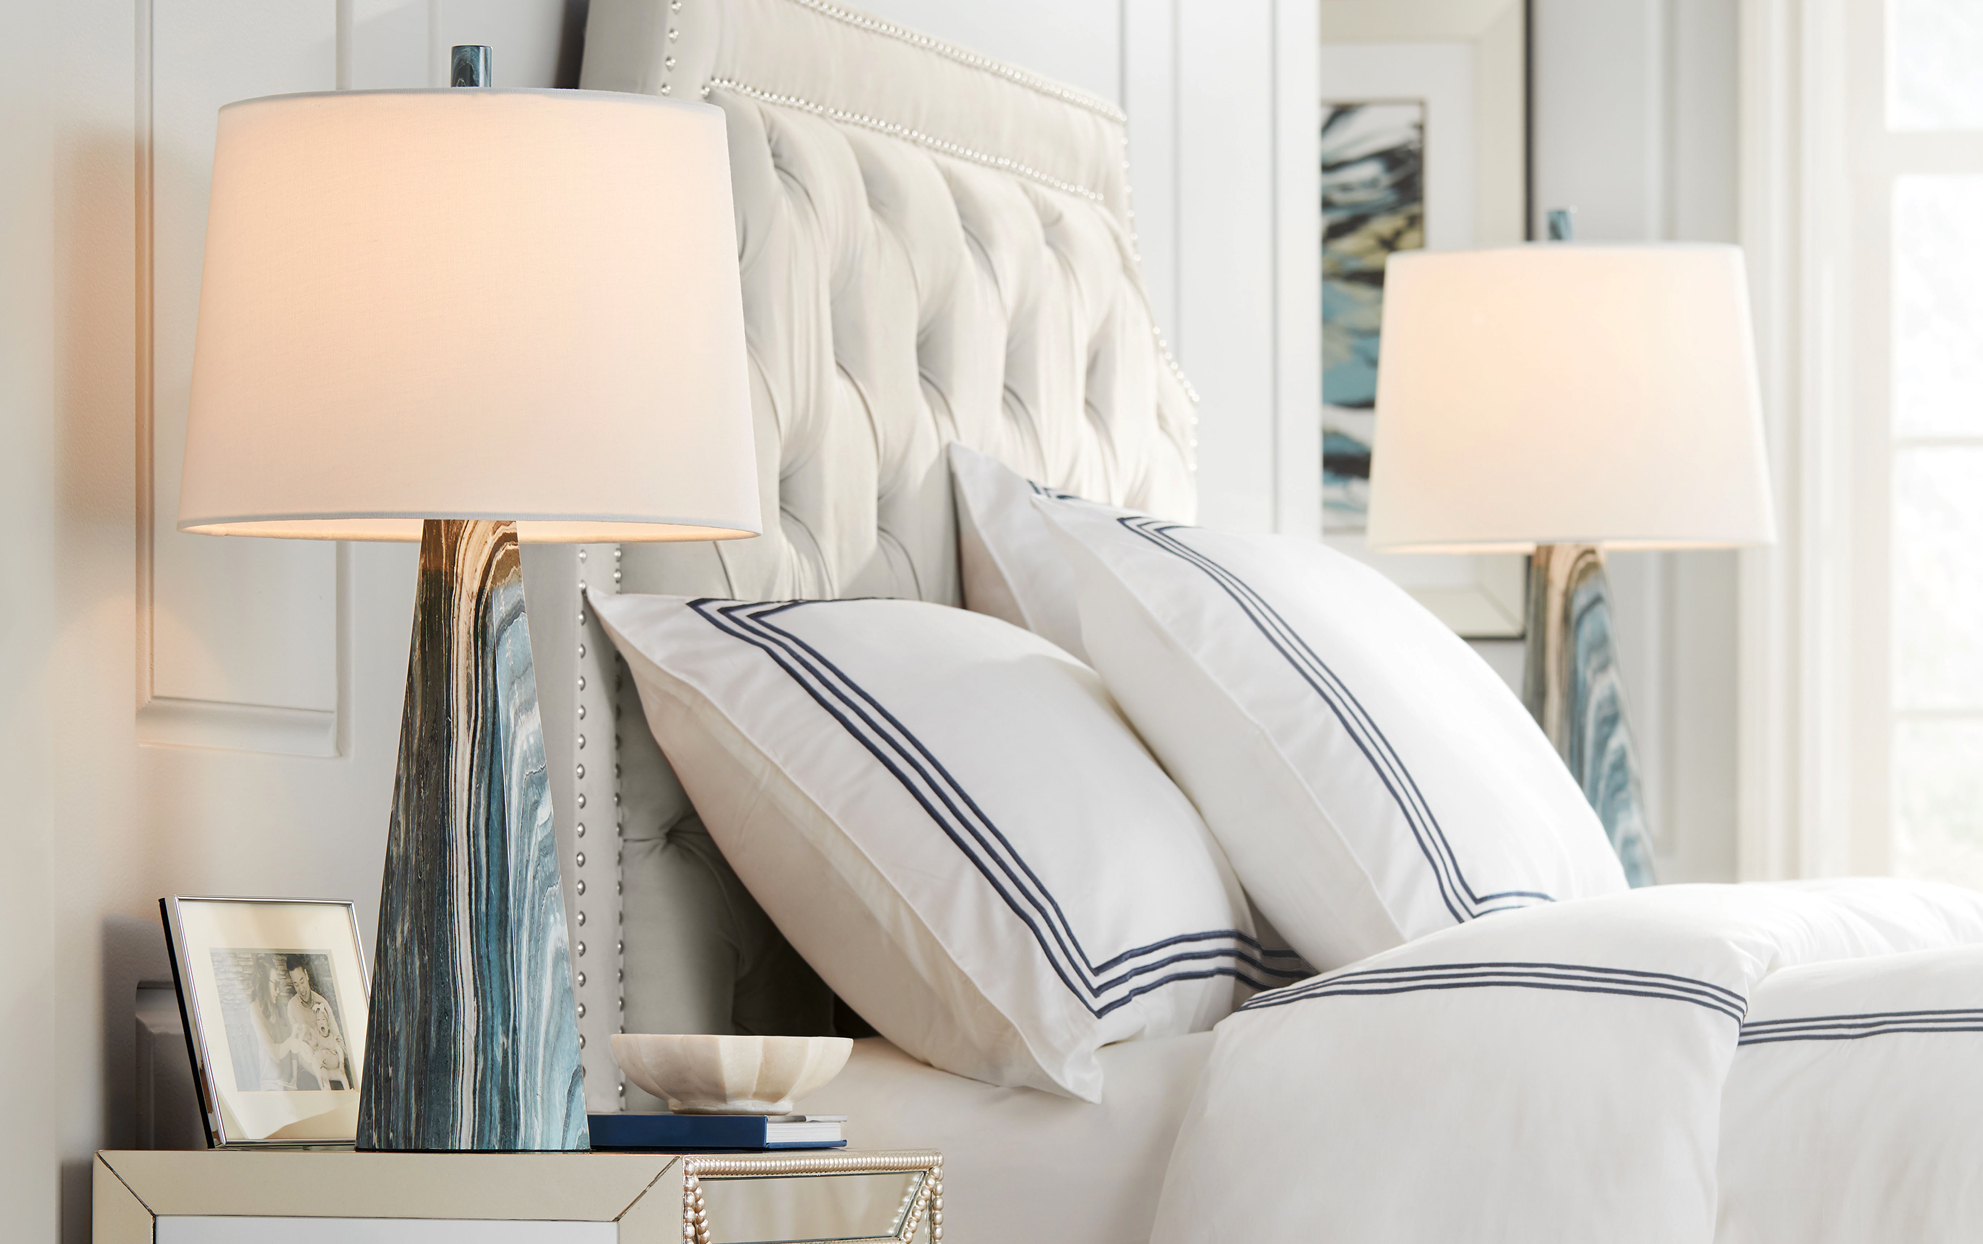 Bed and side tables with lamps in a white and cream palette